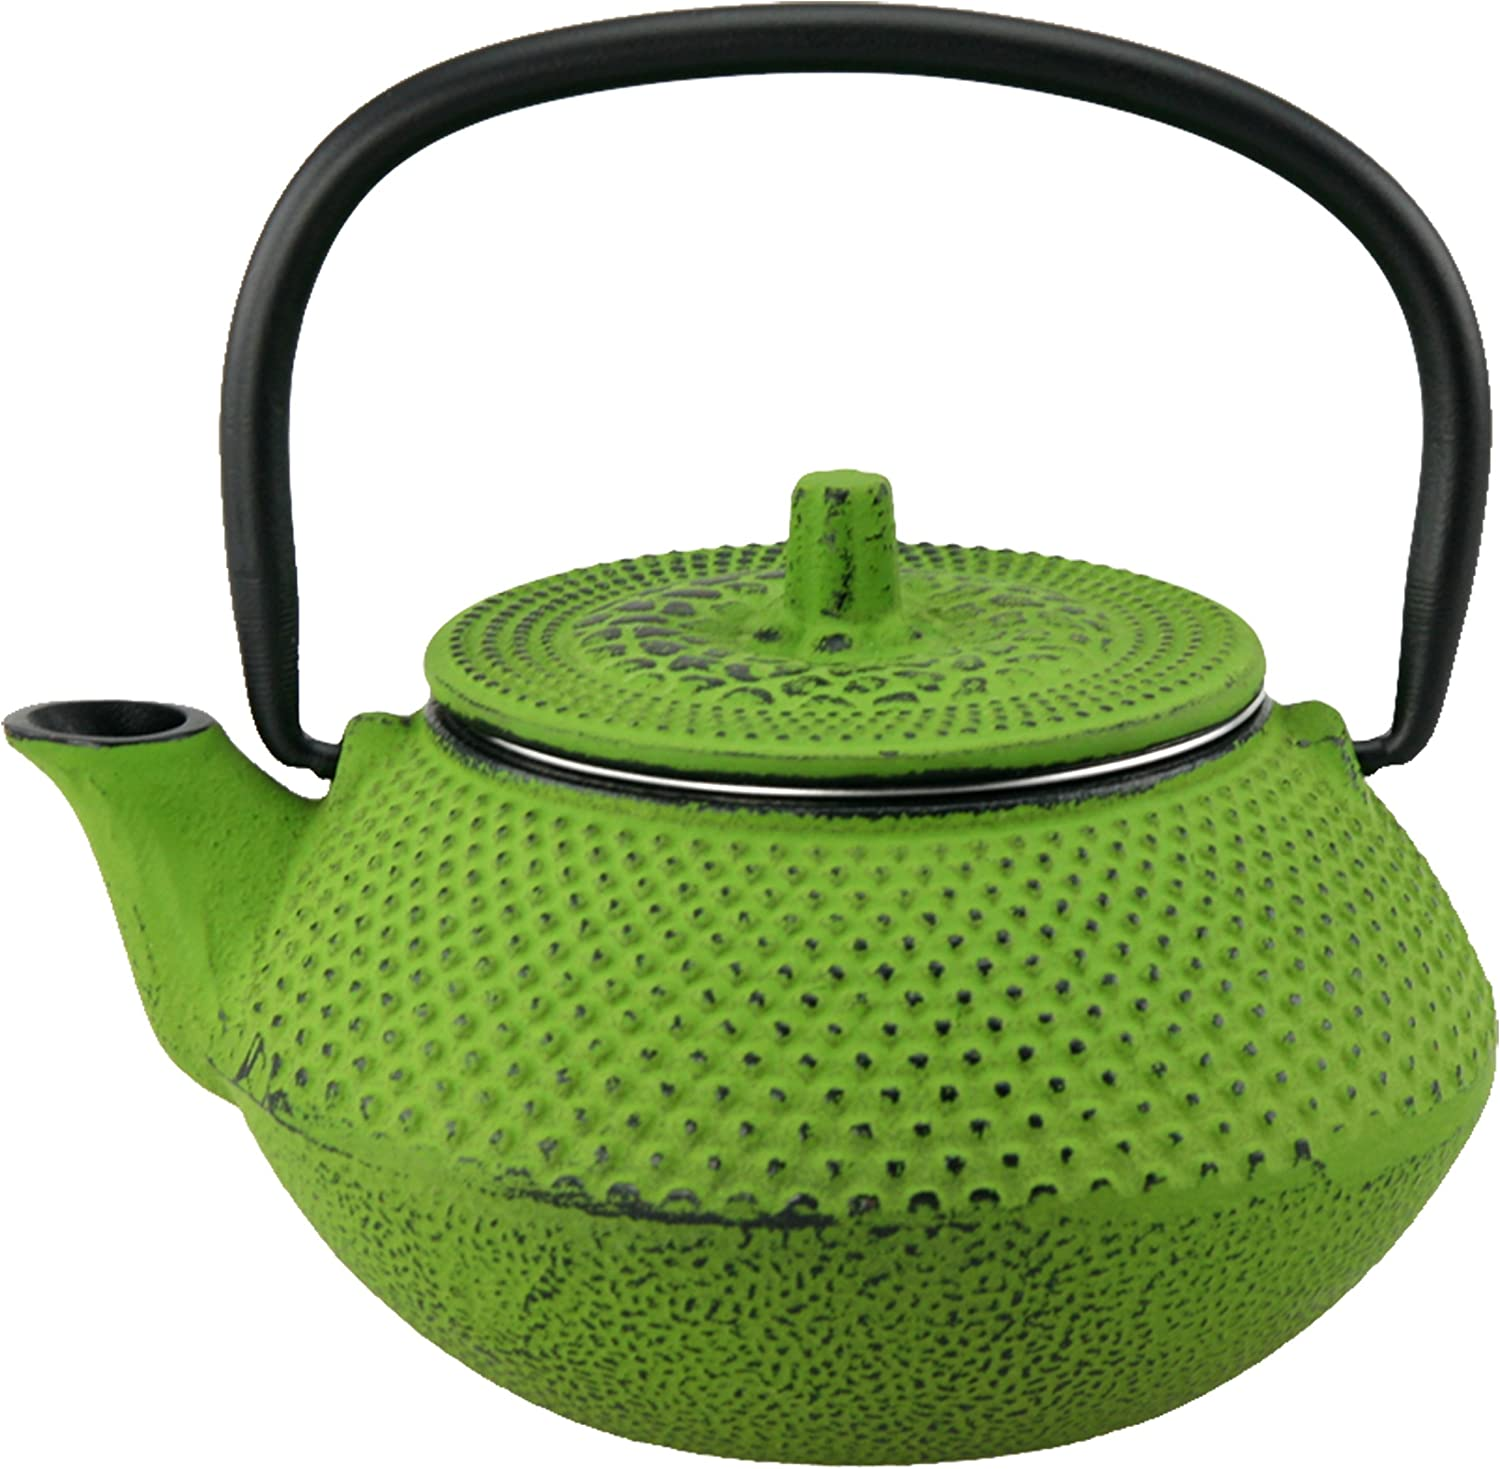 Creative Home Kyusu 10 oz. Cast Iron Tea Pot with Removable Stainless Steel Infuser Basket, Green